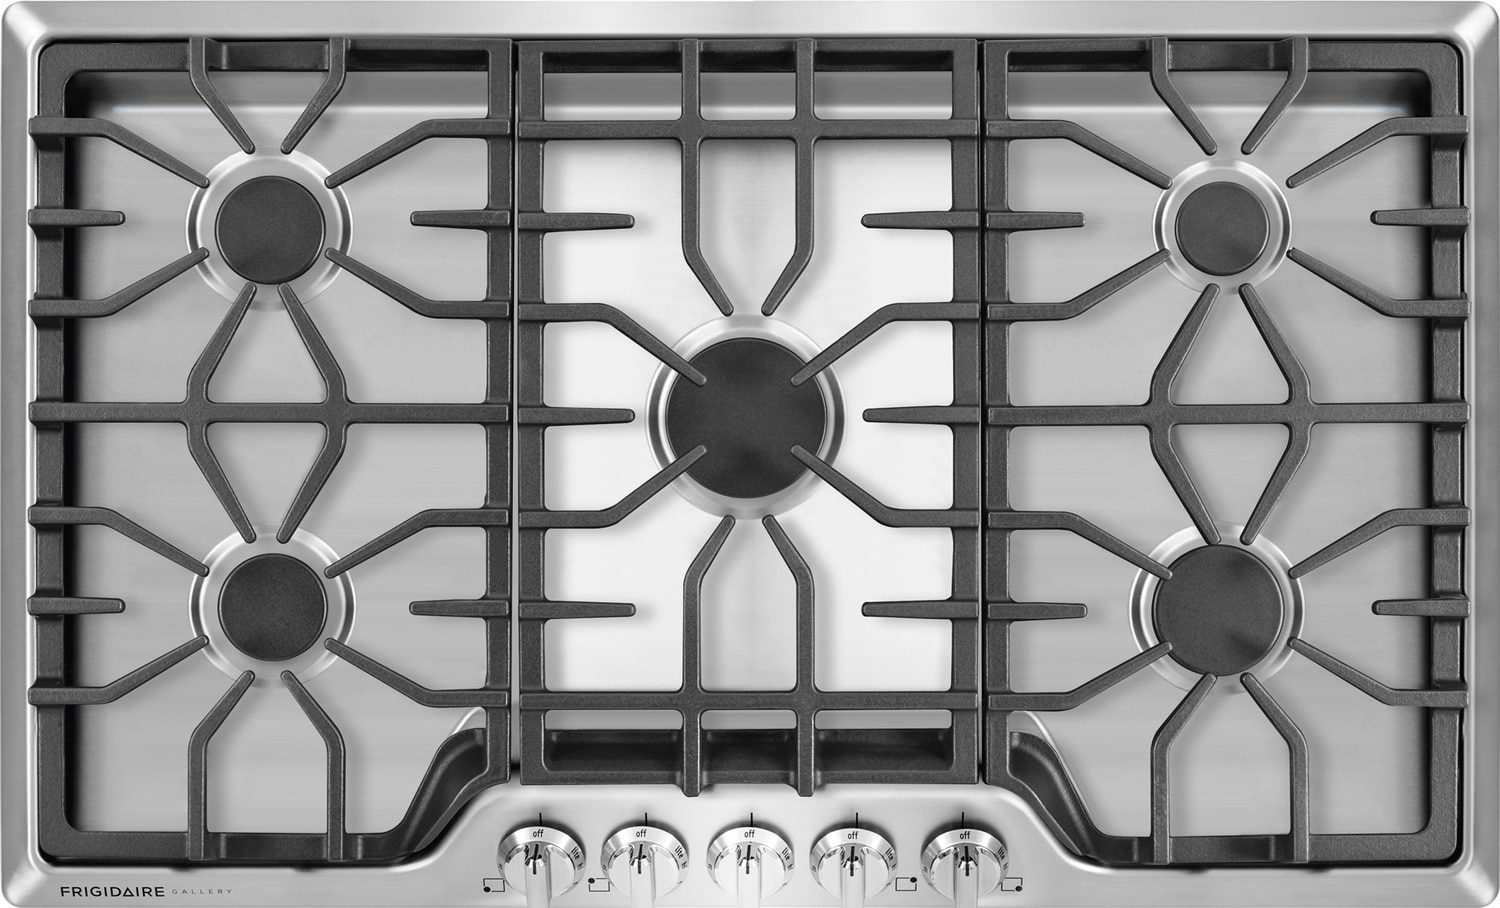 Frigidaire Gallery Stainless Steel Gas Cooktop  - FGGC3645QS